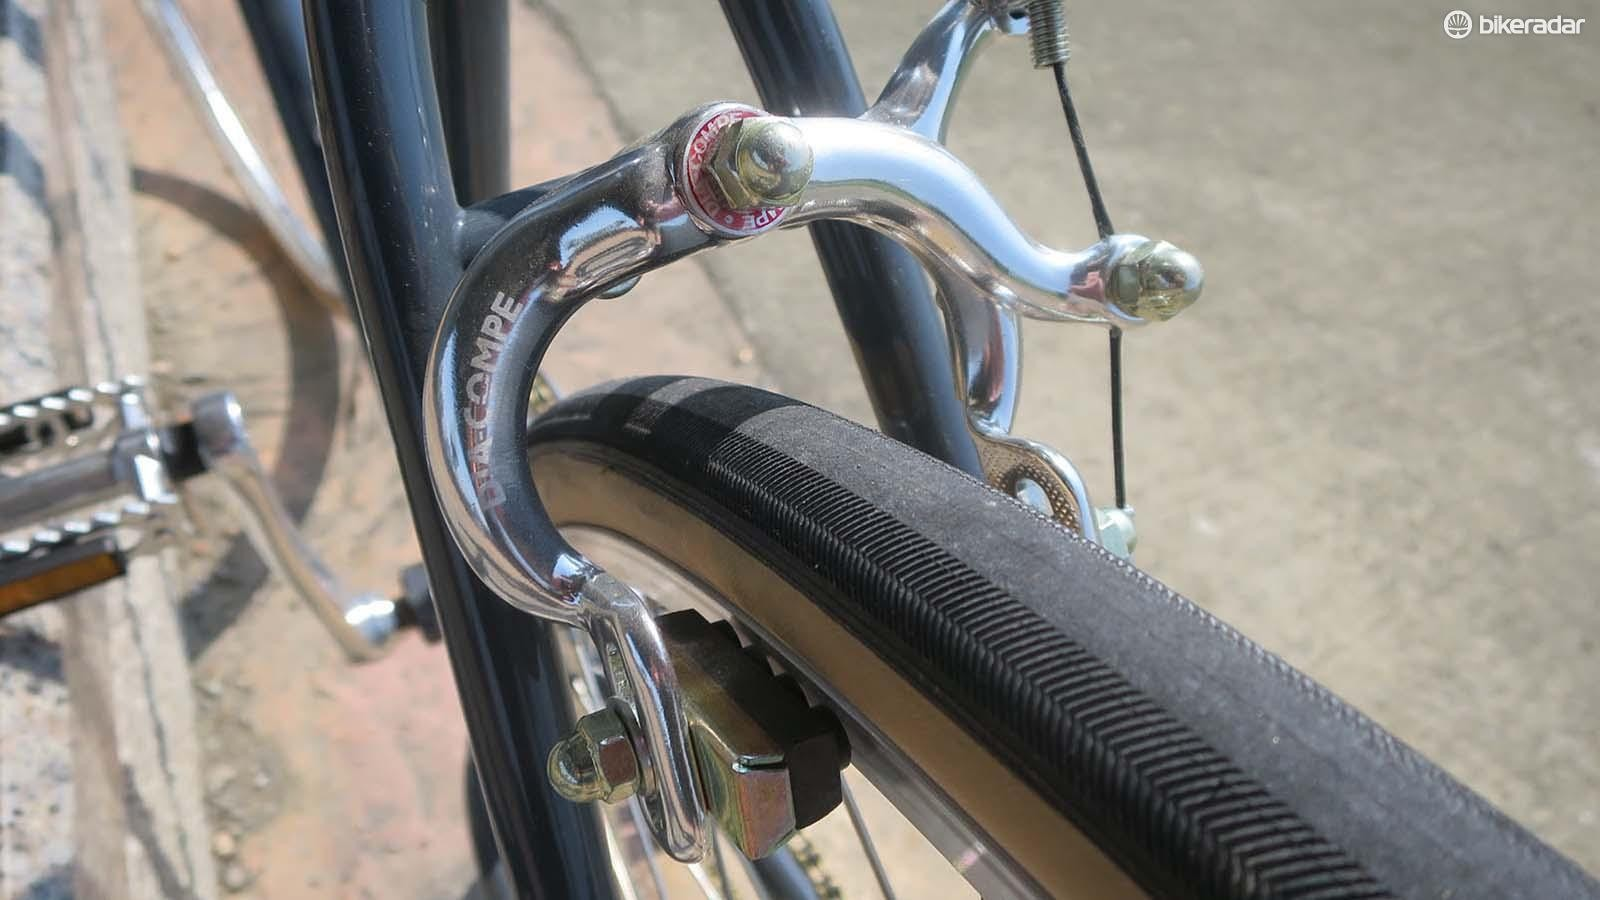 Vintage-styled Dia-Compe single-pivot brakes may not be the most powerful but they do have massive tyre clearance and are mudguard compatible too